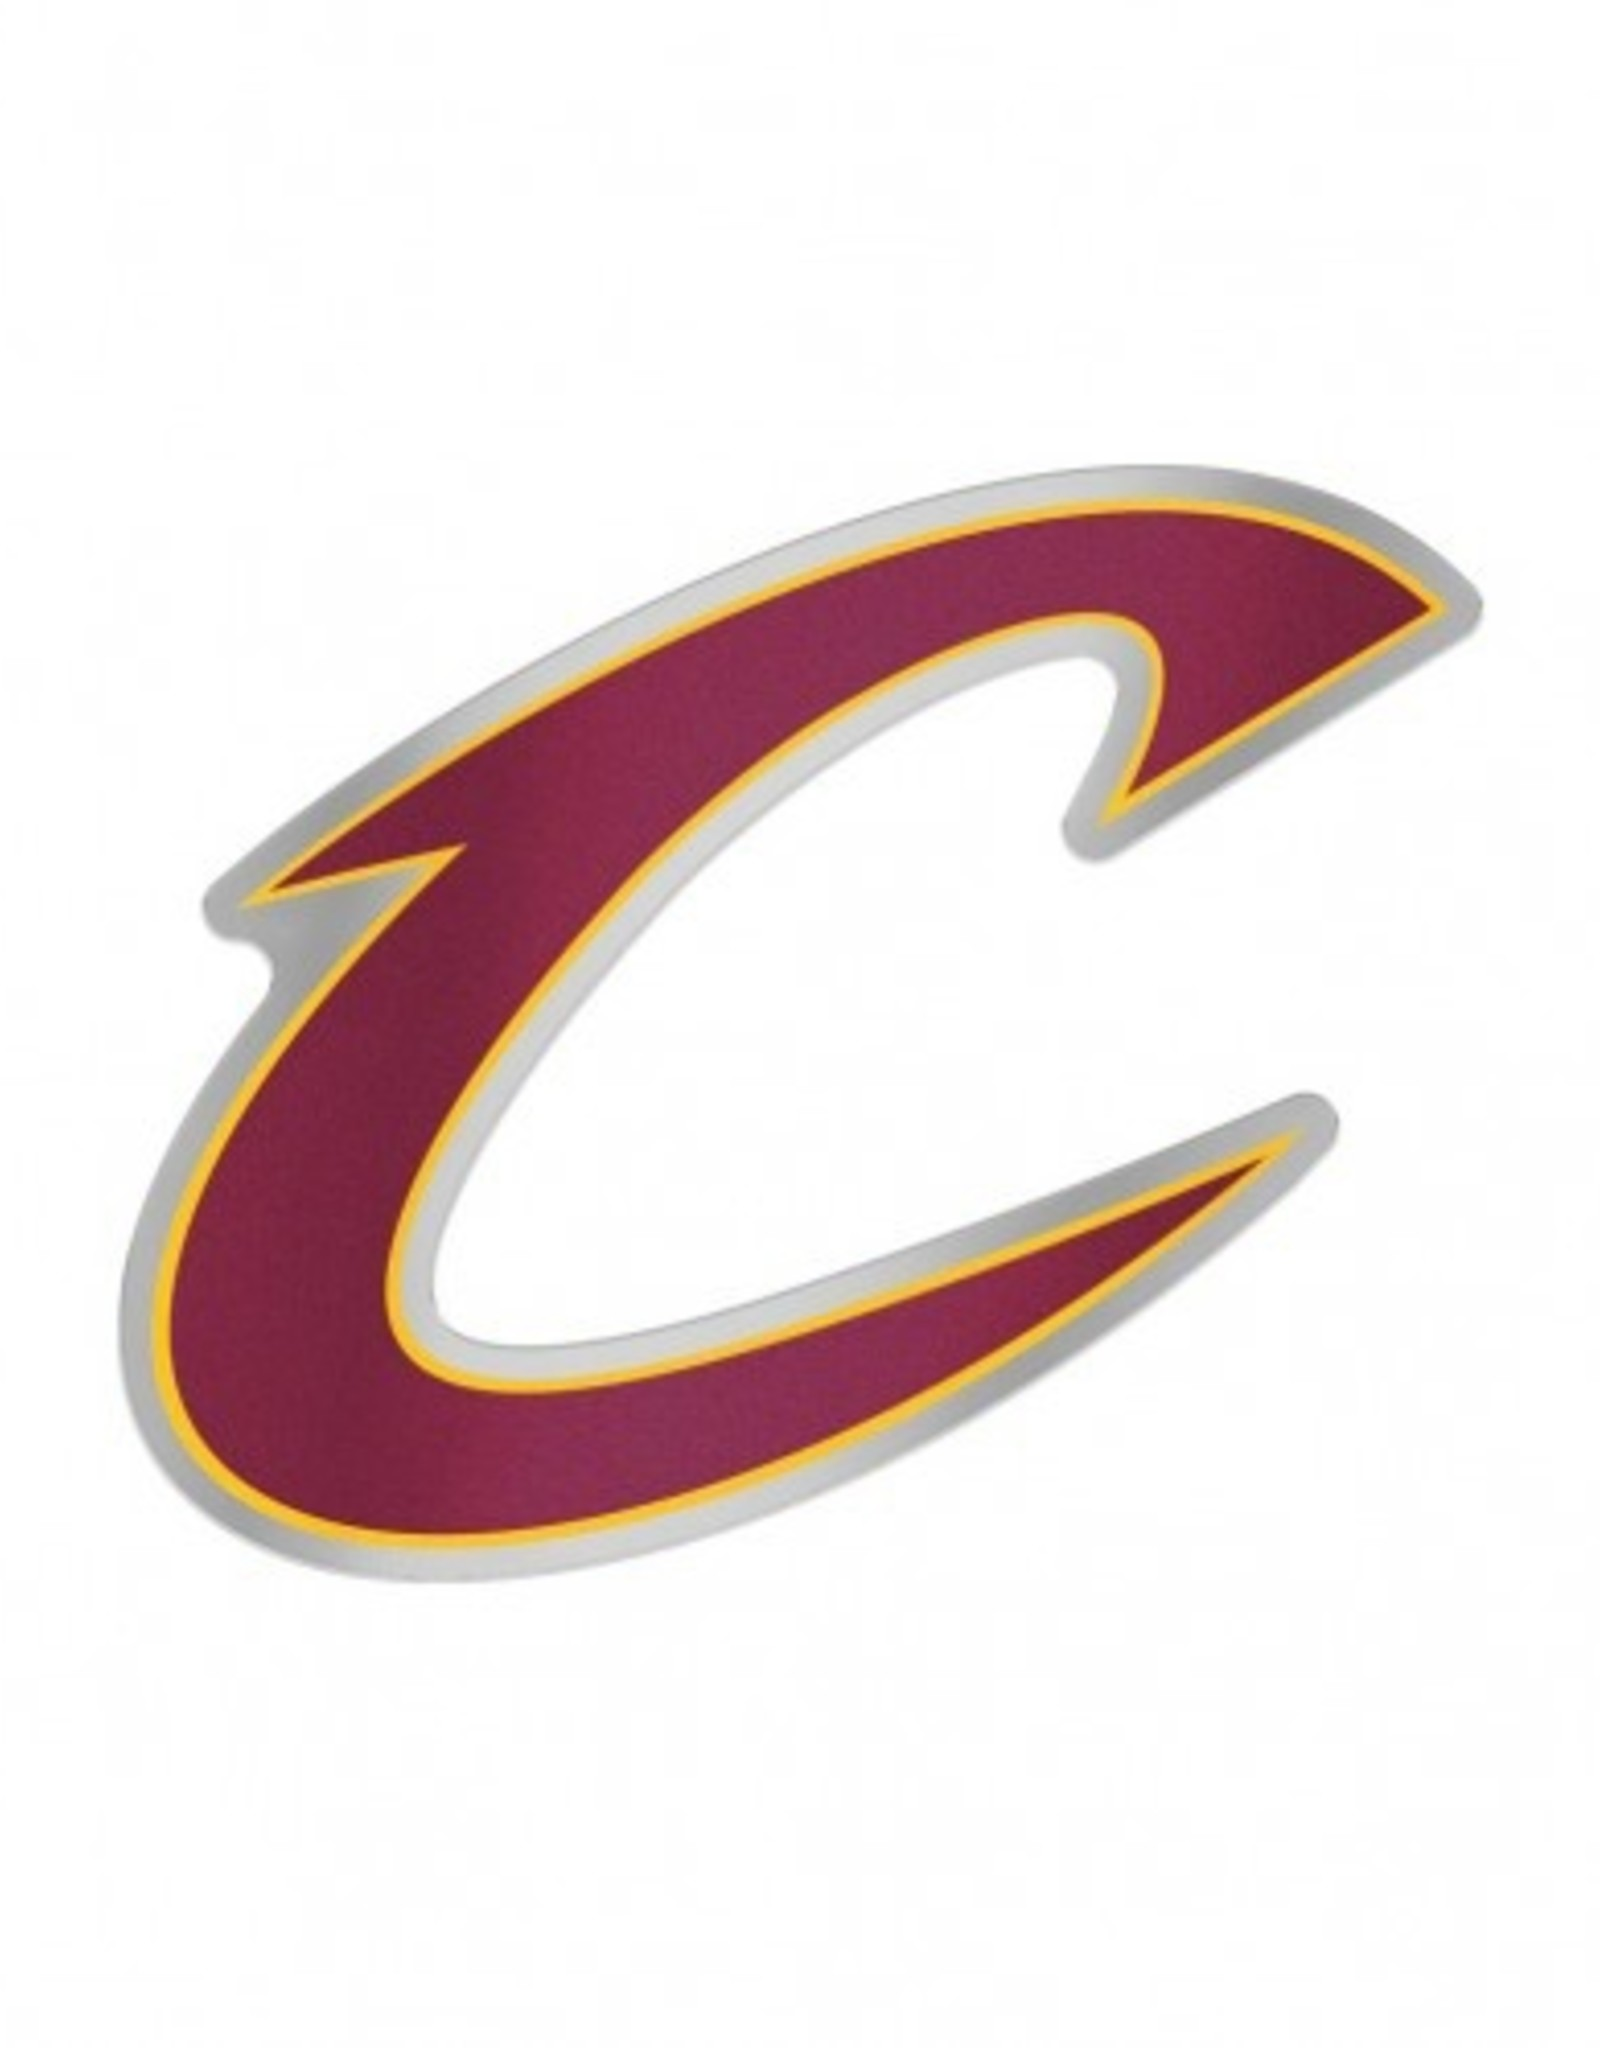 Cleveland Cavaliers Laser Cut Auto Badge Decal